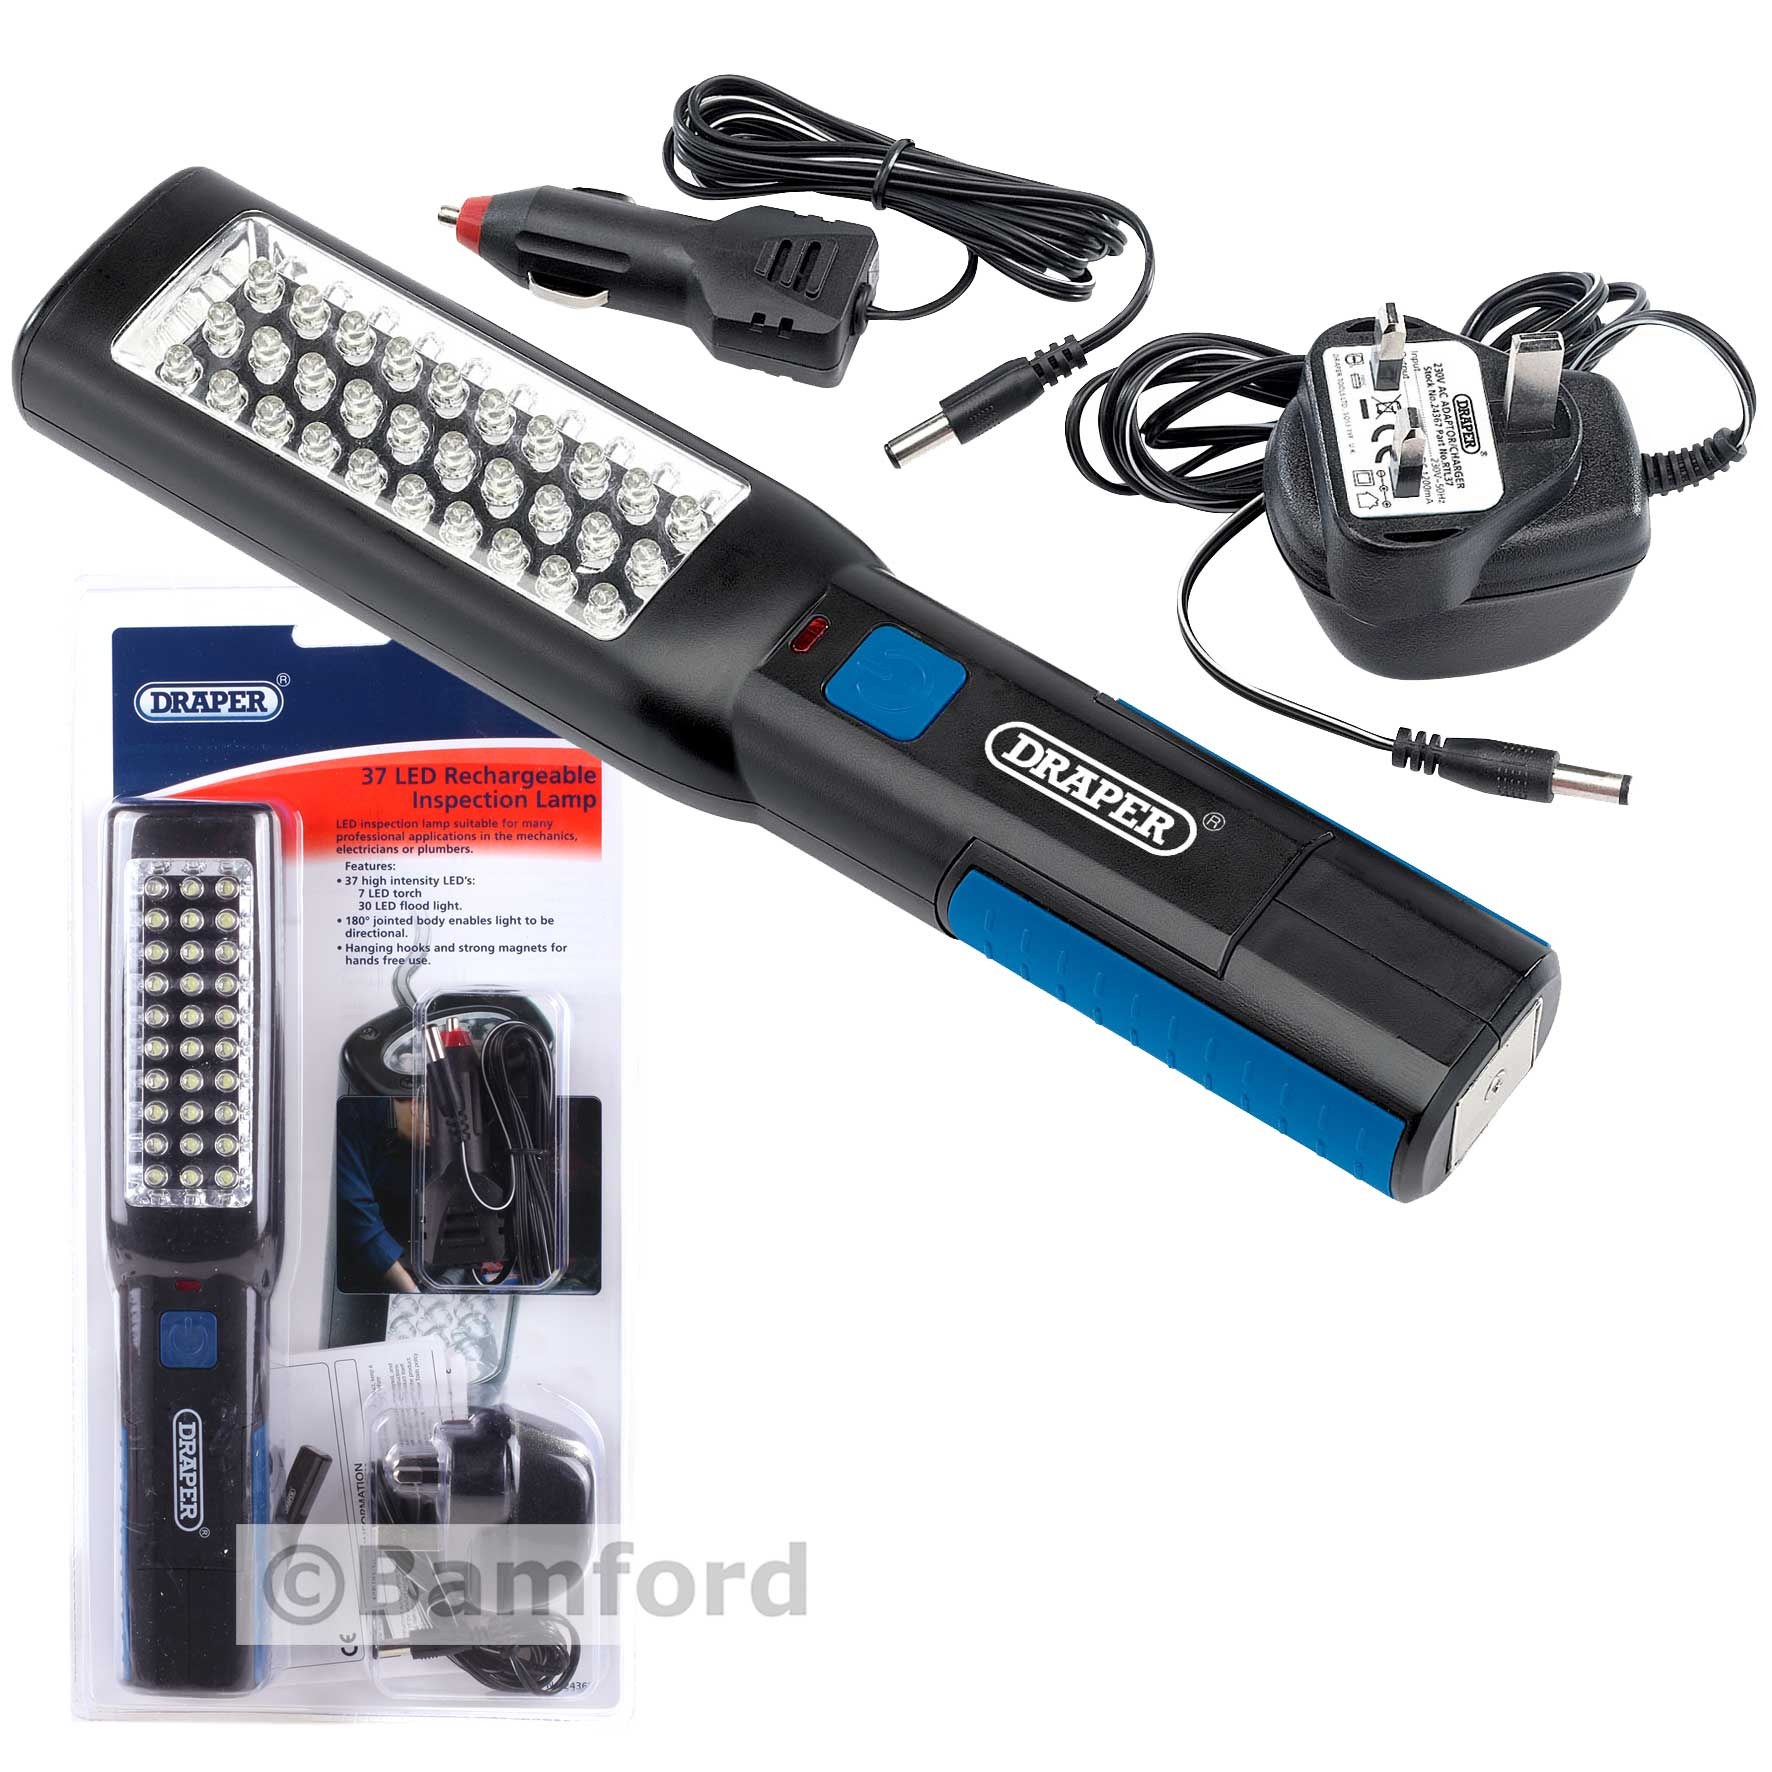 30 Led Rechargeable Inspection Lamp Light Torch Cordless: Draper Cordless Rechargeable LED Inspection Lamp Light